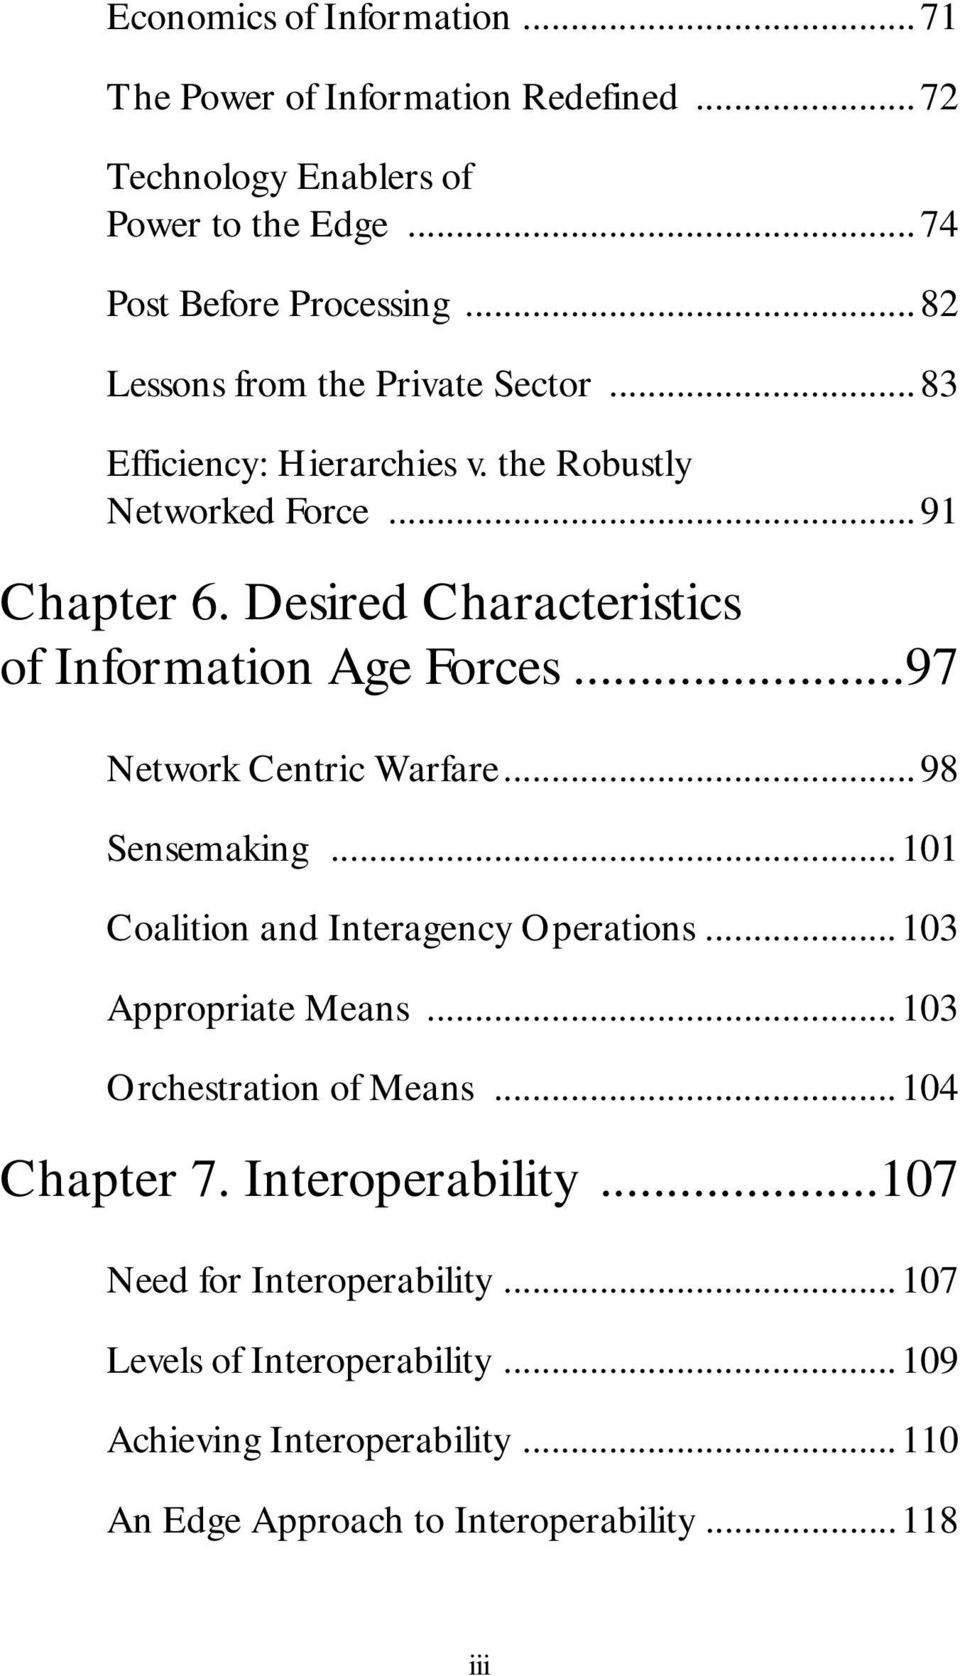 Desired Characteristics of Information Age Forces...97 Network Centric Warfare...98 Sensemaking...101 Coalition and Interagency Operations.